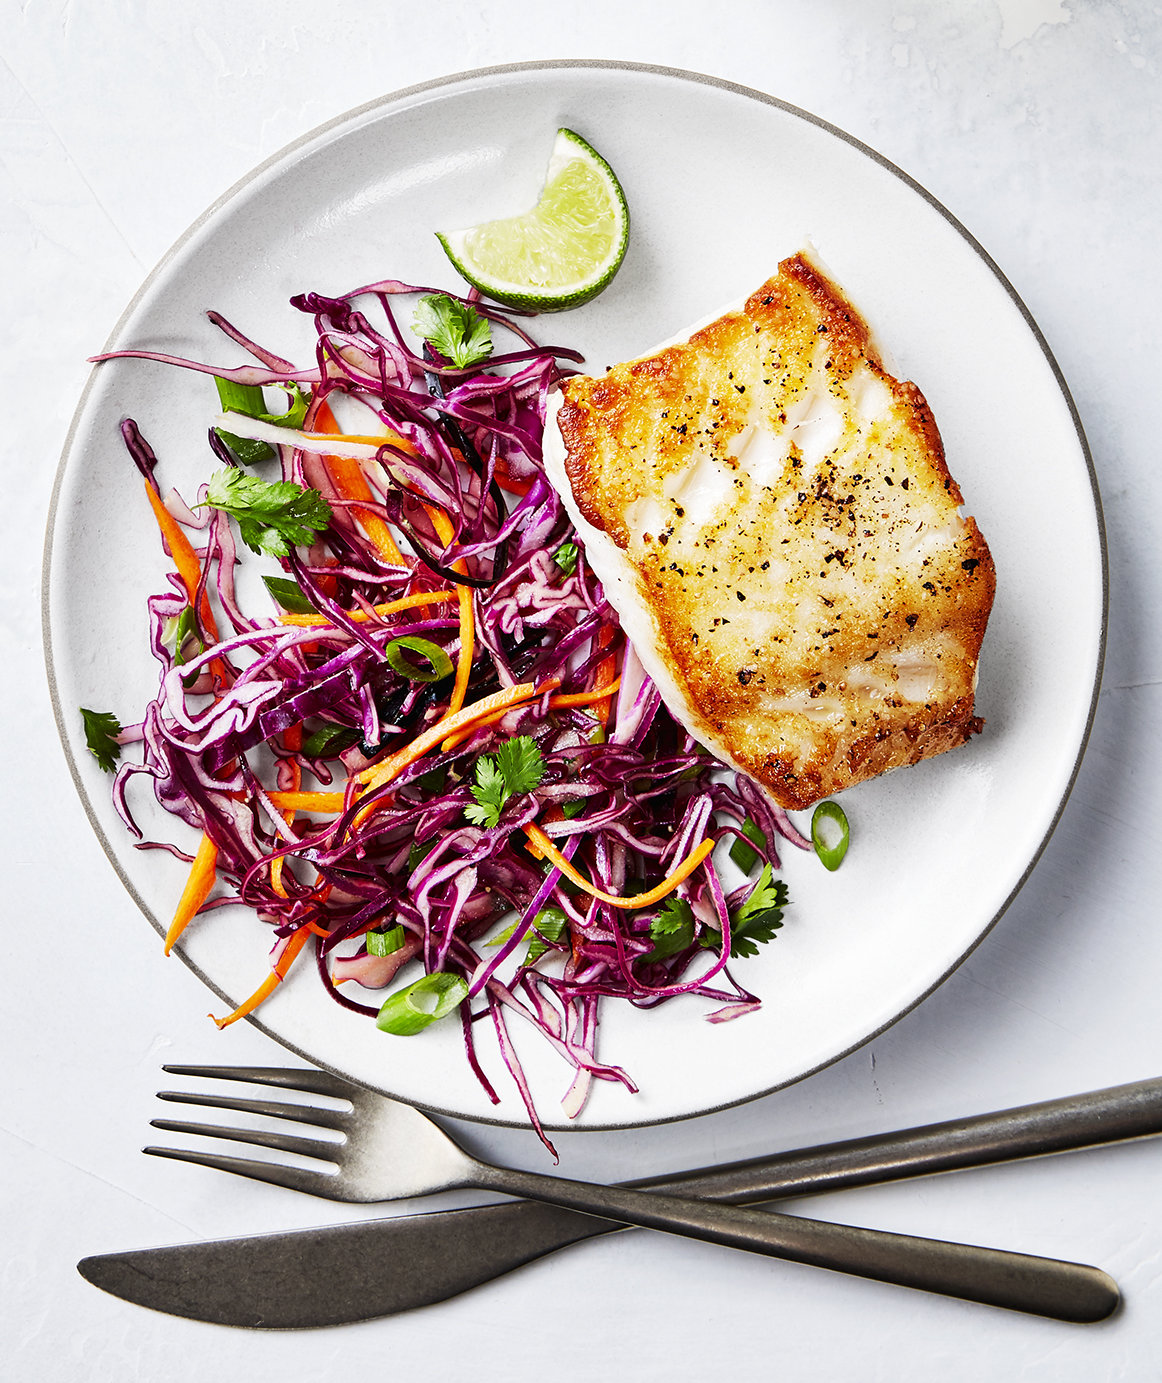 How To Make Pan Seared Fish With a PerfectlyCrispy Skin